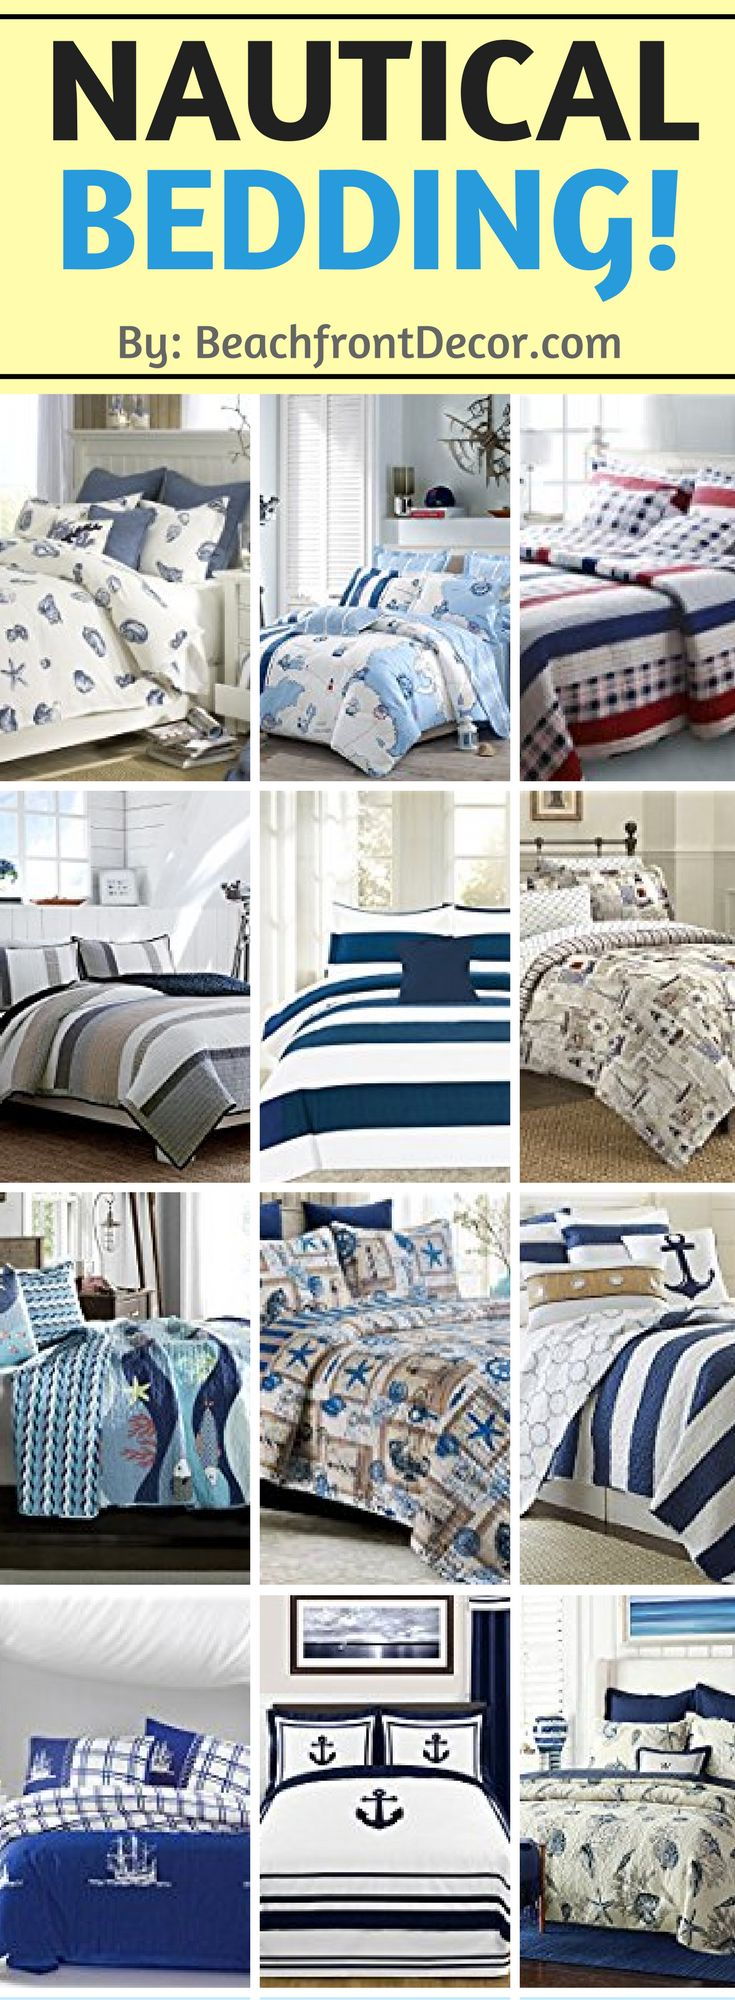 The Ultimate Guide to Nautical Bedding Sets!  Check out bedding, comforter, and quilt sets for your beach themed bedroom that include stripes, rope, anchors, lighthouses, the sea, sailboats, pirates, compasses, ship wheels, and more nautical themes.